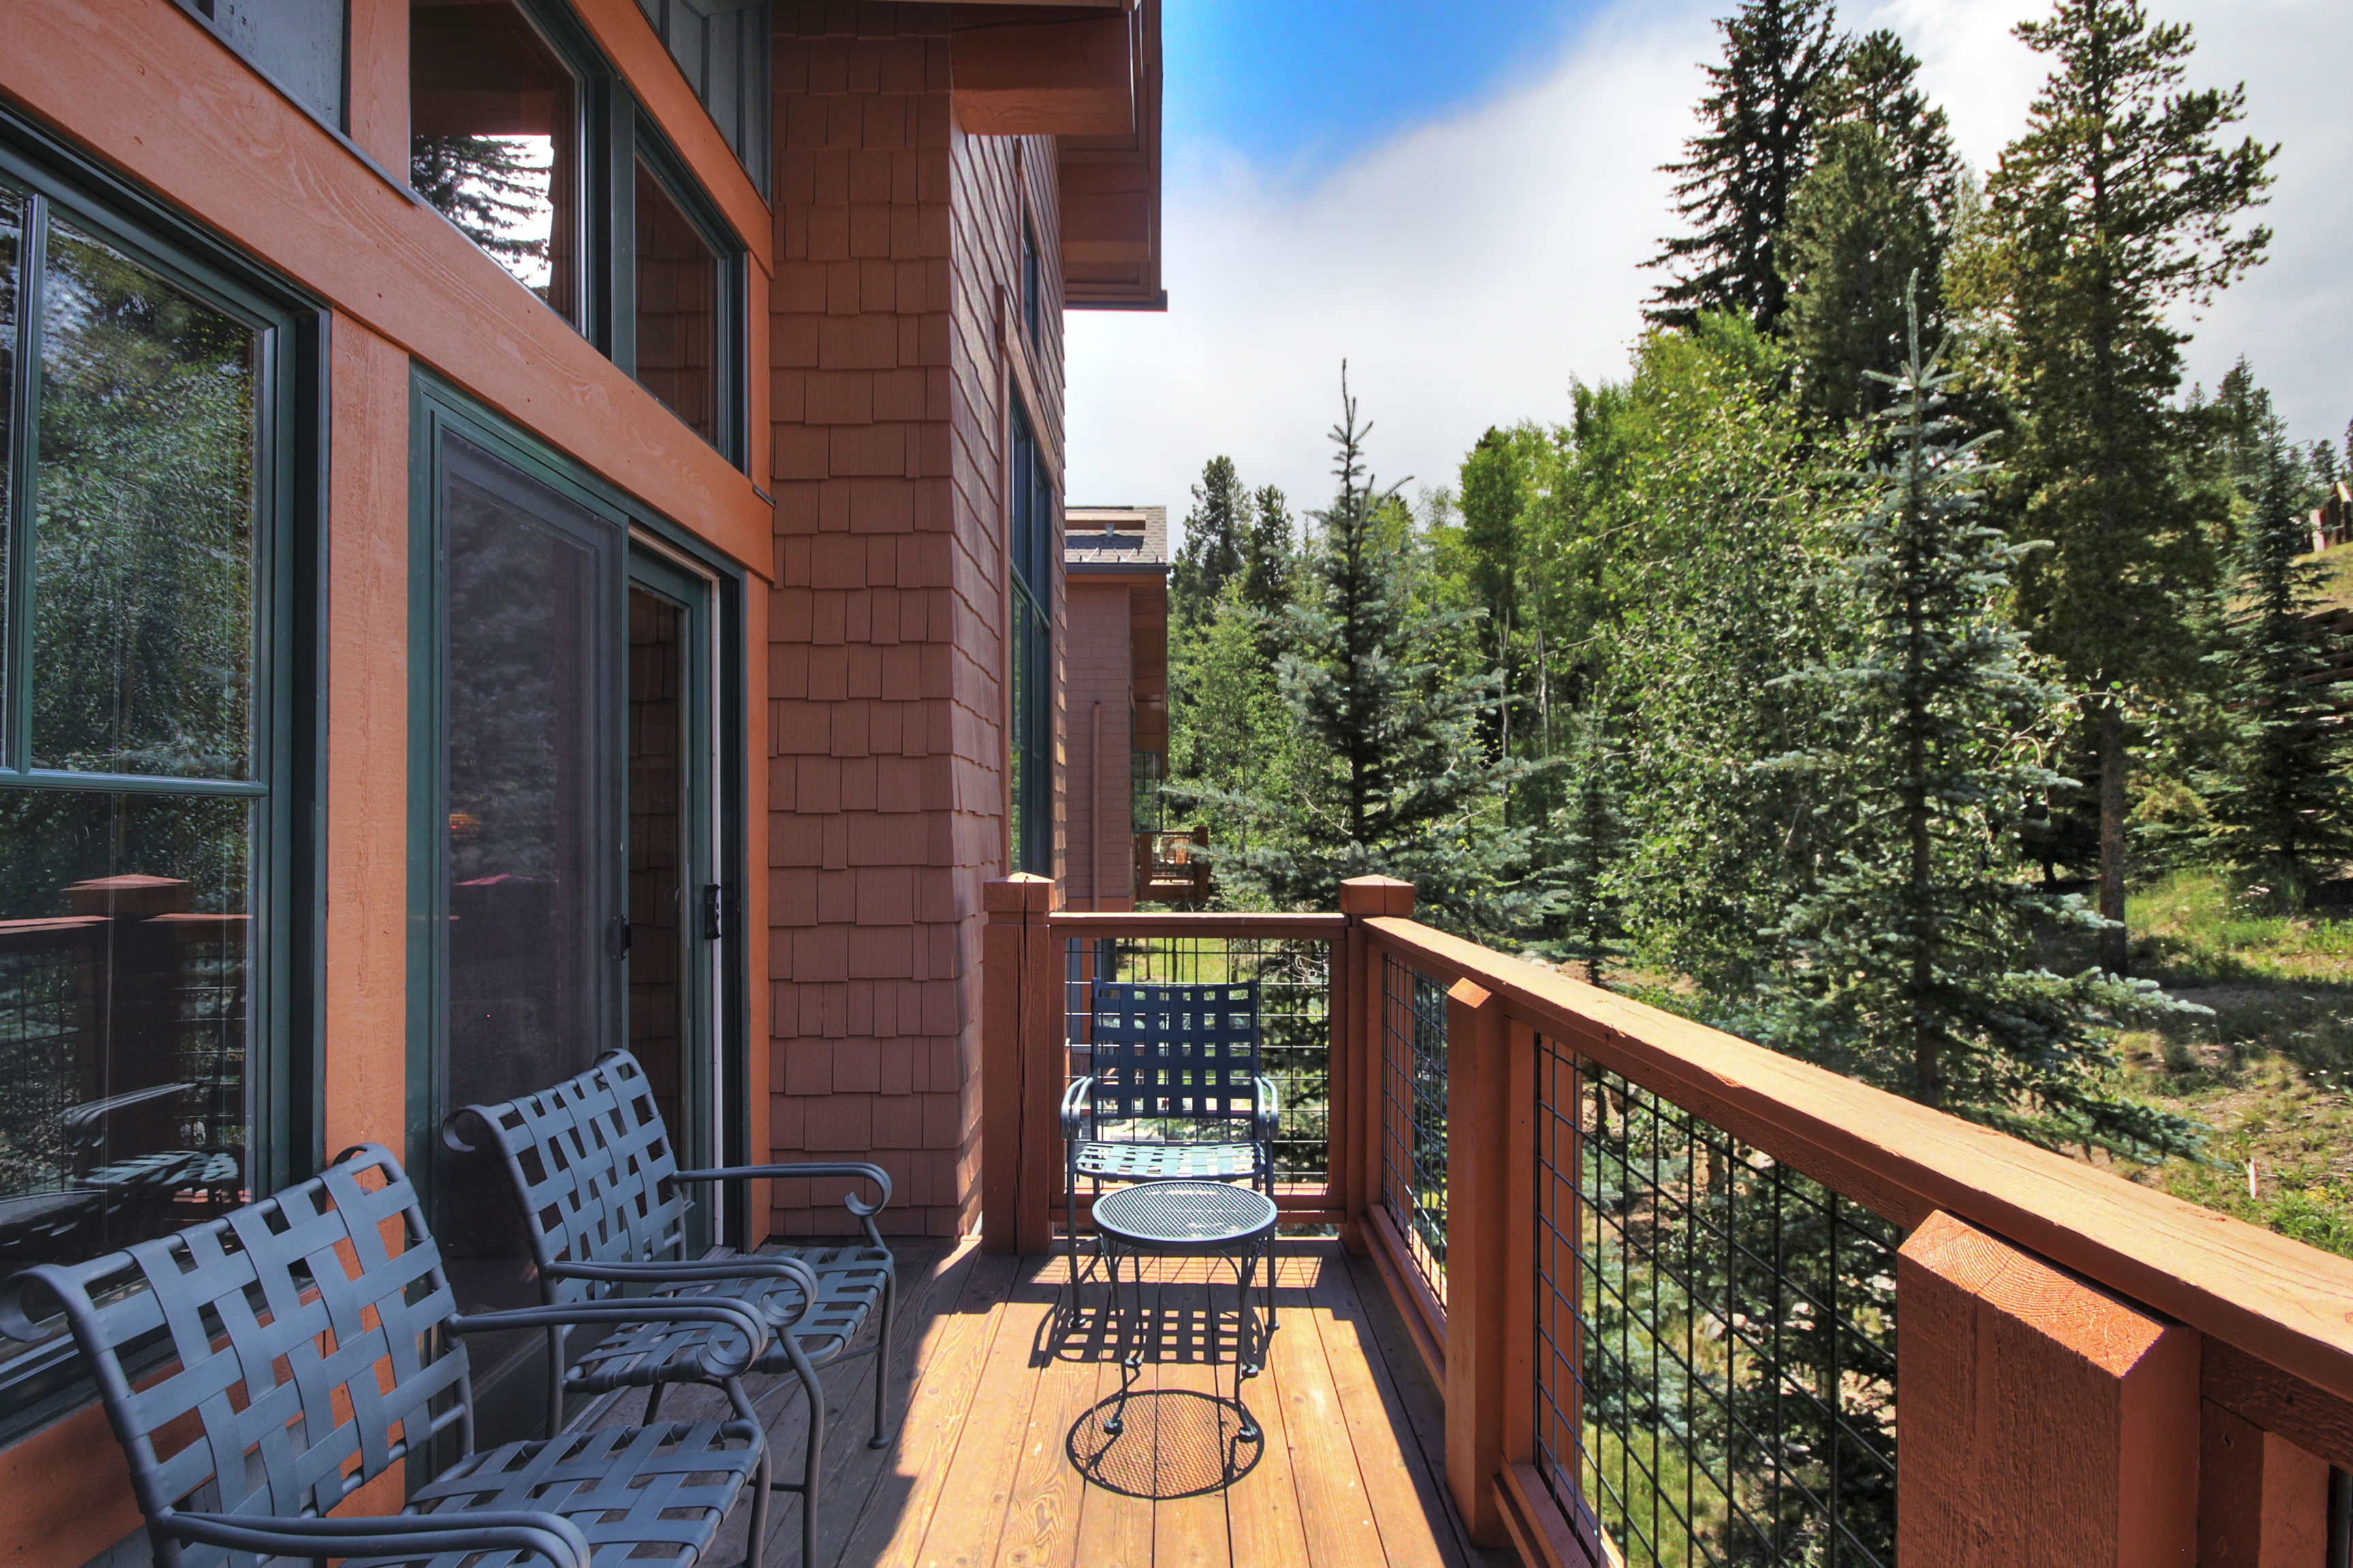 Ski in 2 Bedroom Townhouse at Mountain Thunder Lodge  Vacation Rental in  Breckenridge  Ski in 2 Bedroom Townhouse at Mountain Thunder Lodge    RA163461  . 2 Bedroom Townhouse. Home Design Ideas